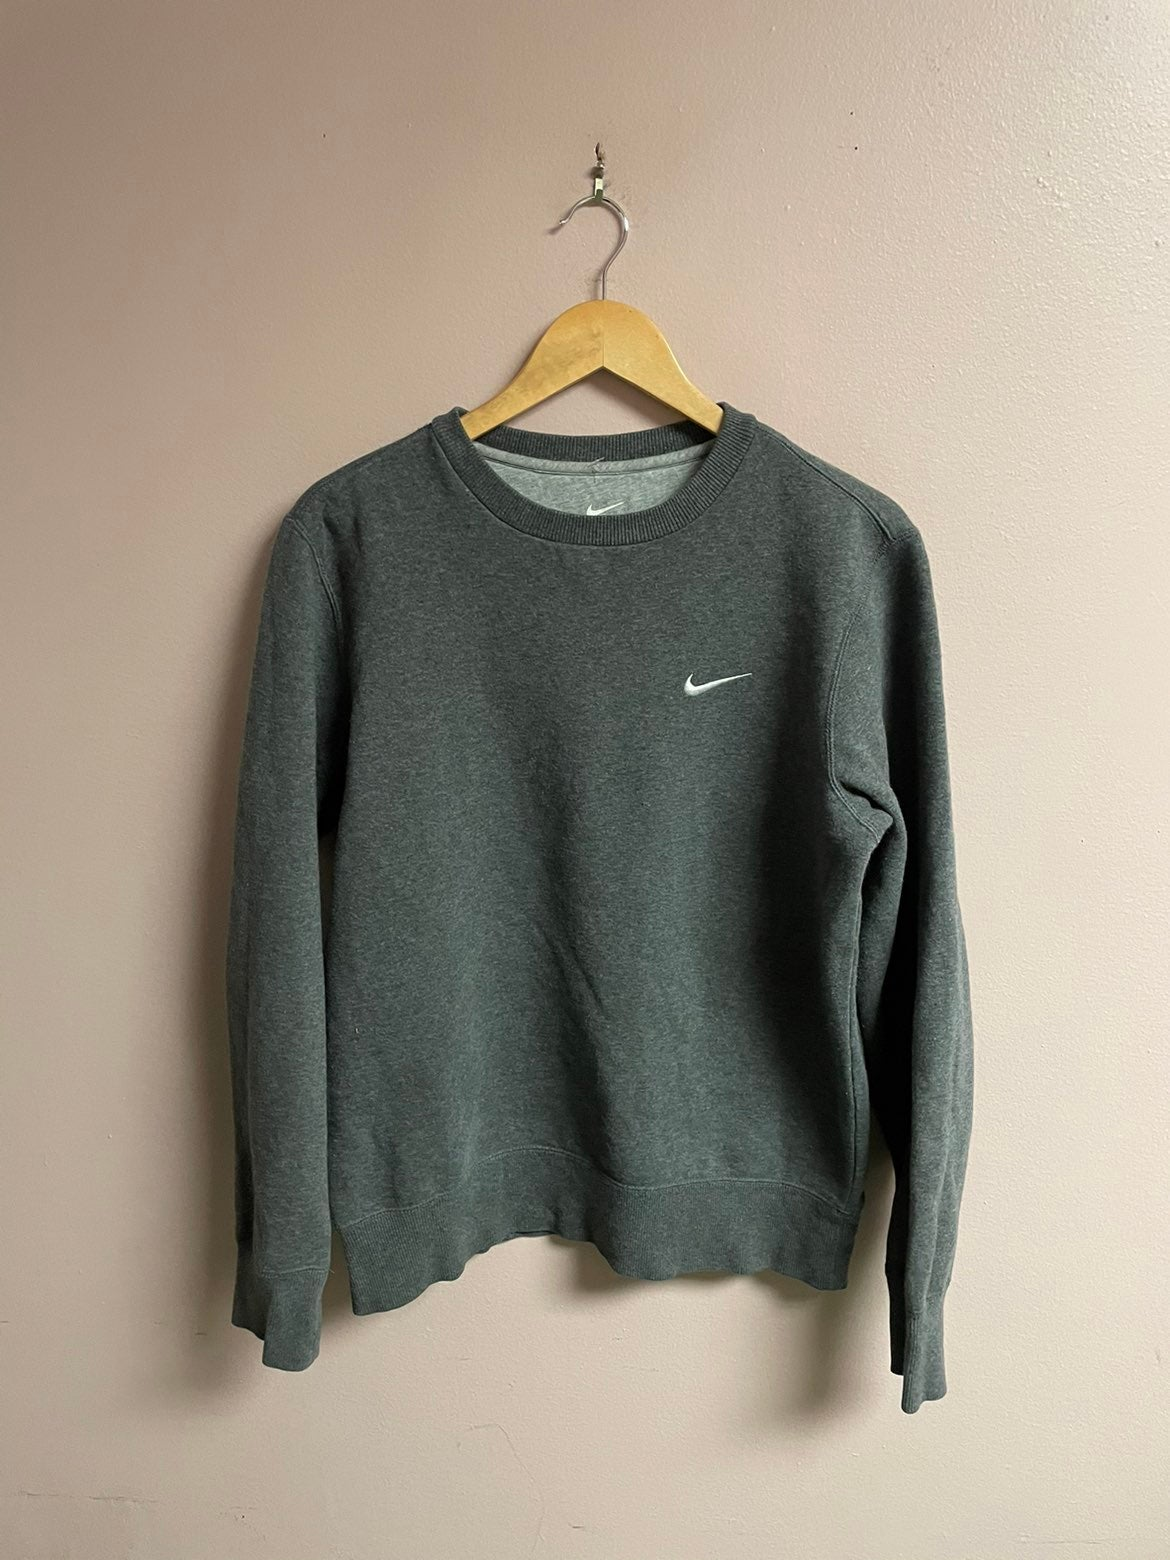 Nike essential sweatshirt